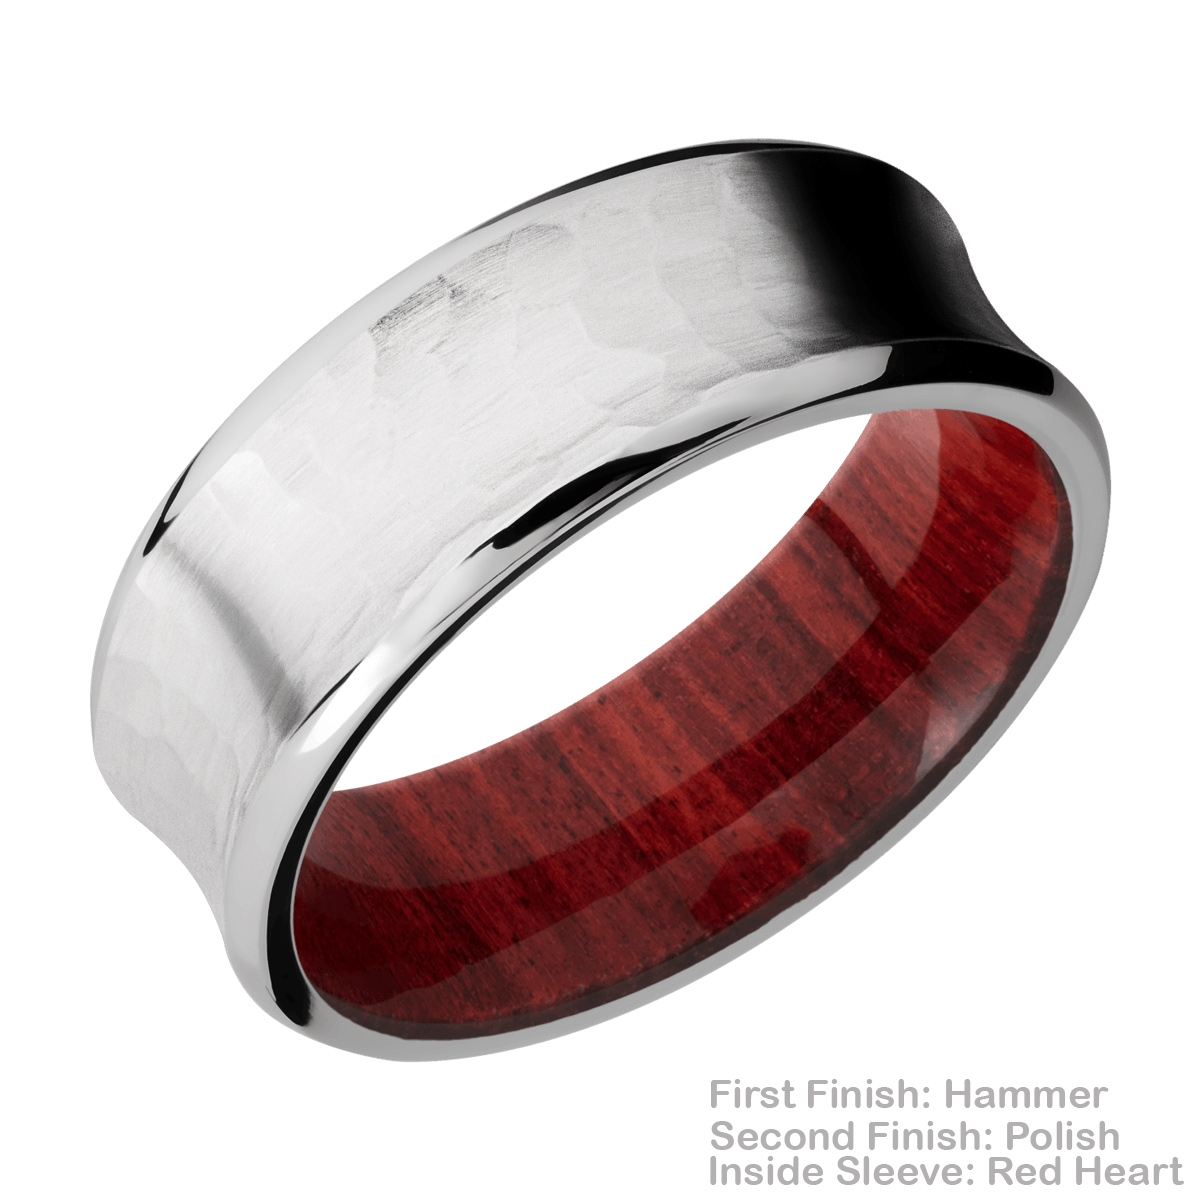 Lashbrook HWSLEEVECC8CB Cobalt Chrome and Hardwood Wedding Ring or Band Alternative View 10